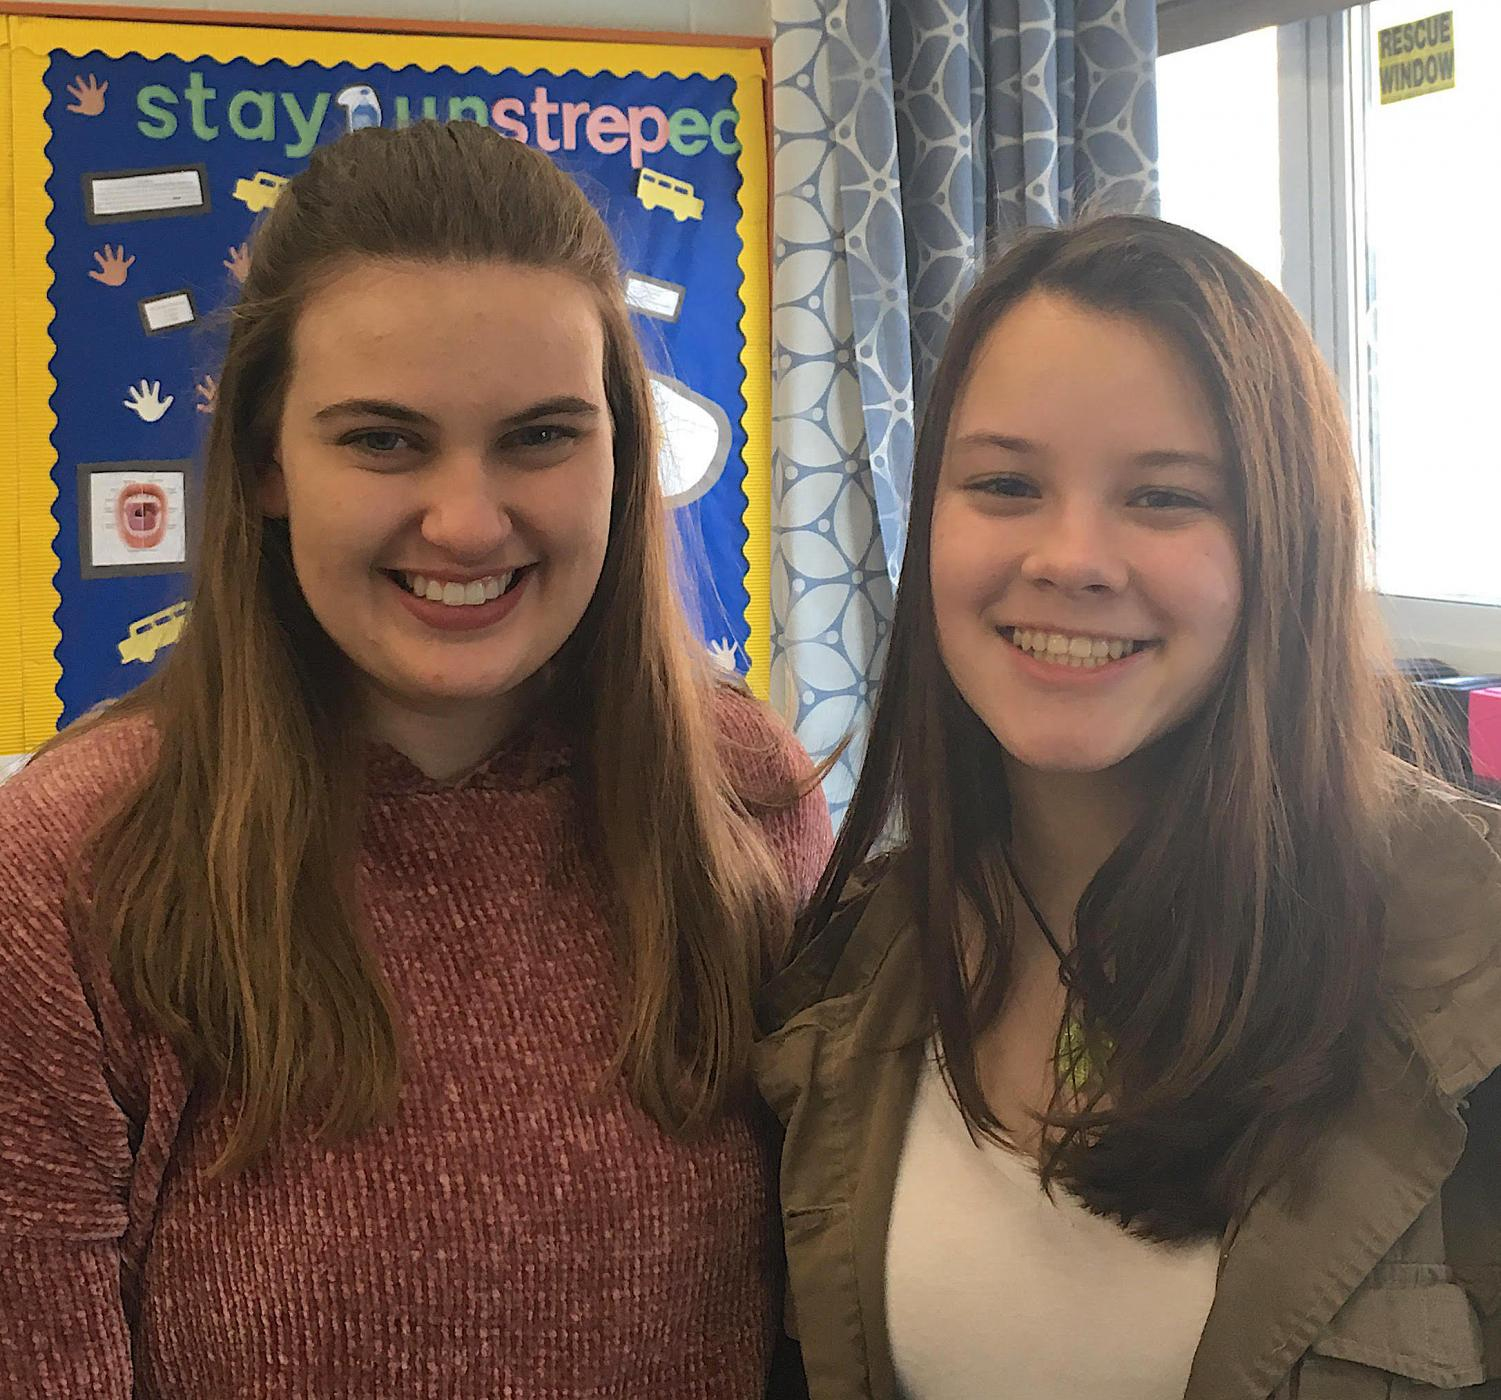 HOSA president Lauren Ifkovits, senior, and vice president Judith De Oliveira, sophomore, are campaigning to raise the legal nicotine purchasing age to 21 in Connecticut.